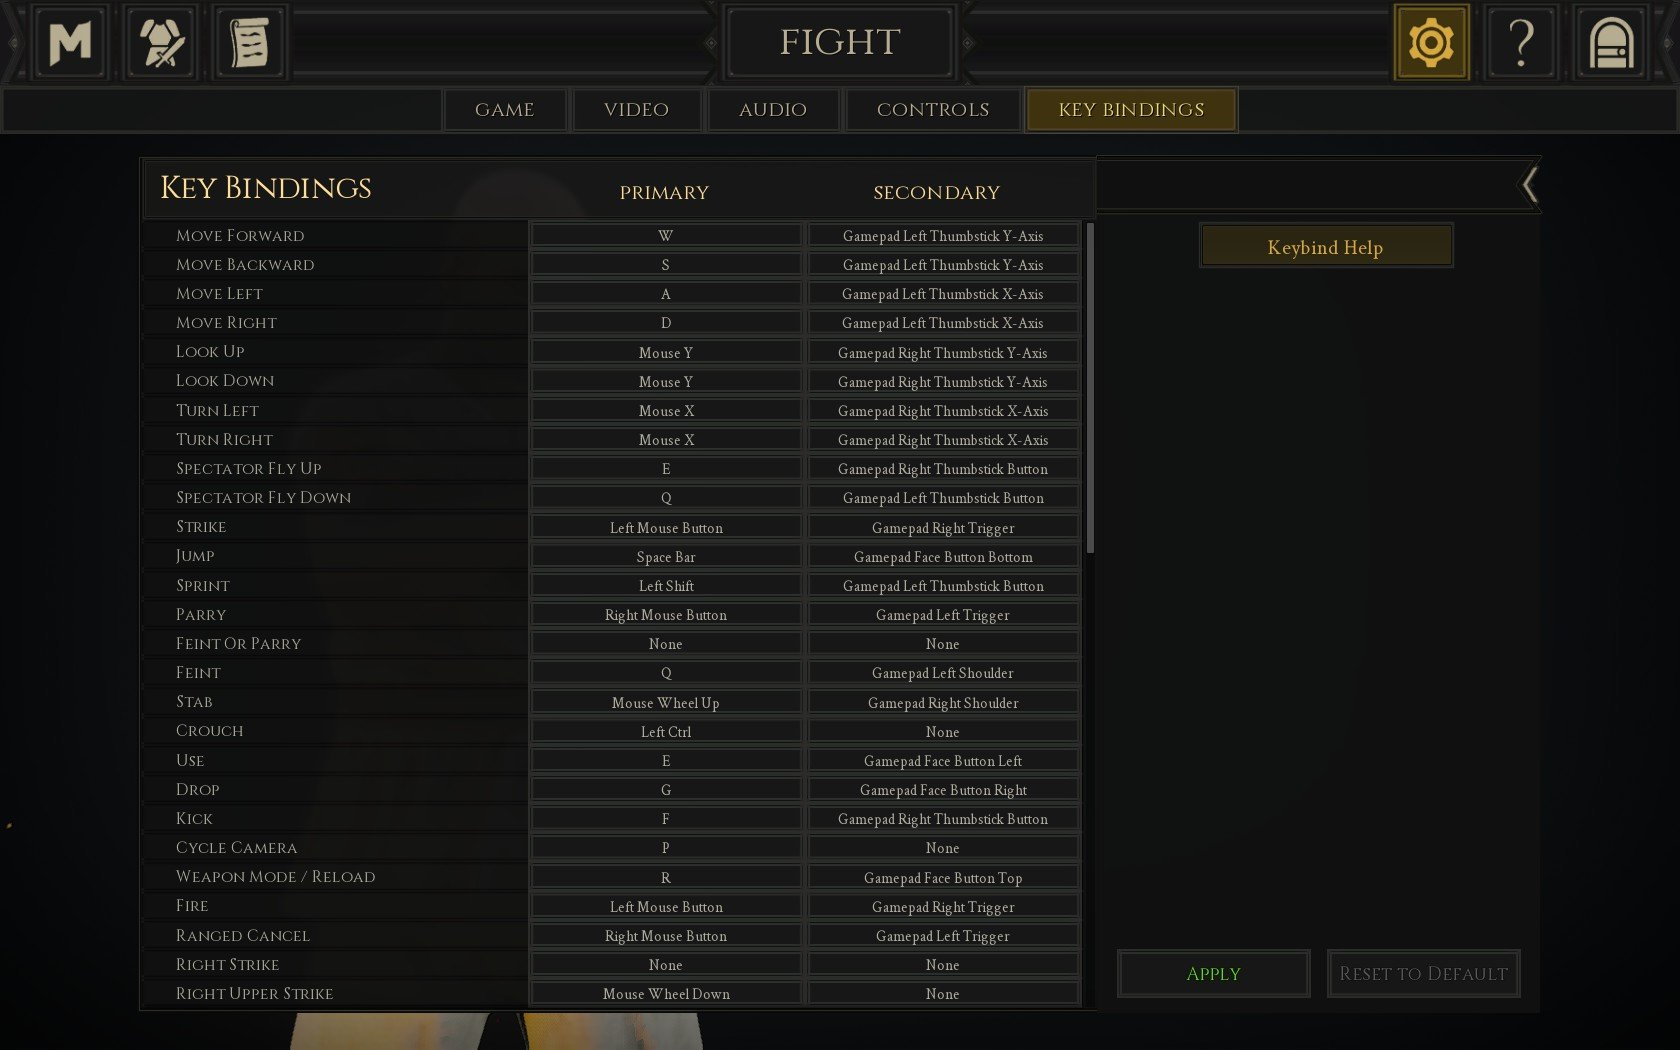 You can find a list of your PC controls and edit your keybindings by navigating to the Settings menu, then selecting the Key Bindings tab in Mordhau.